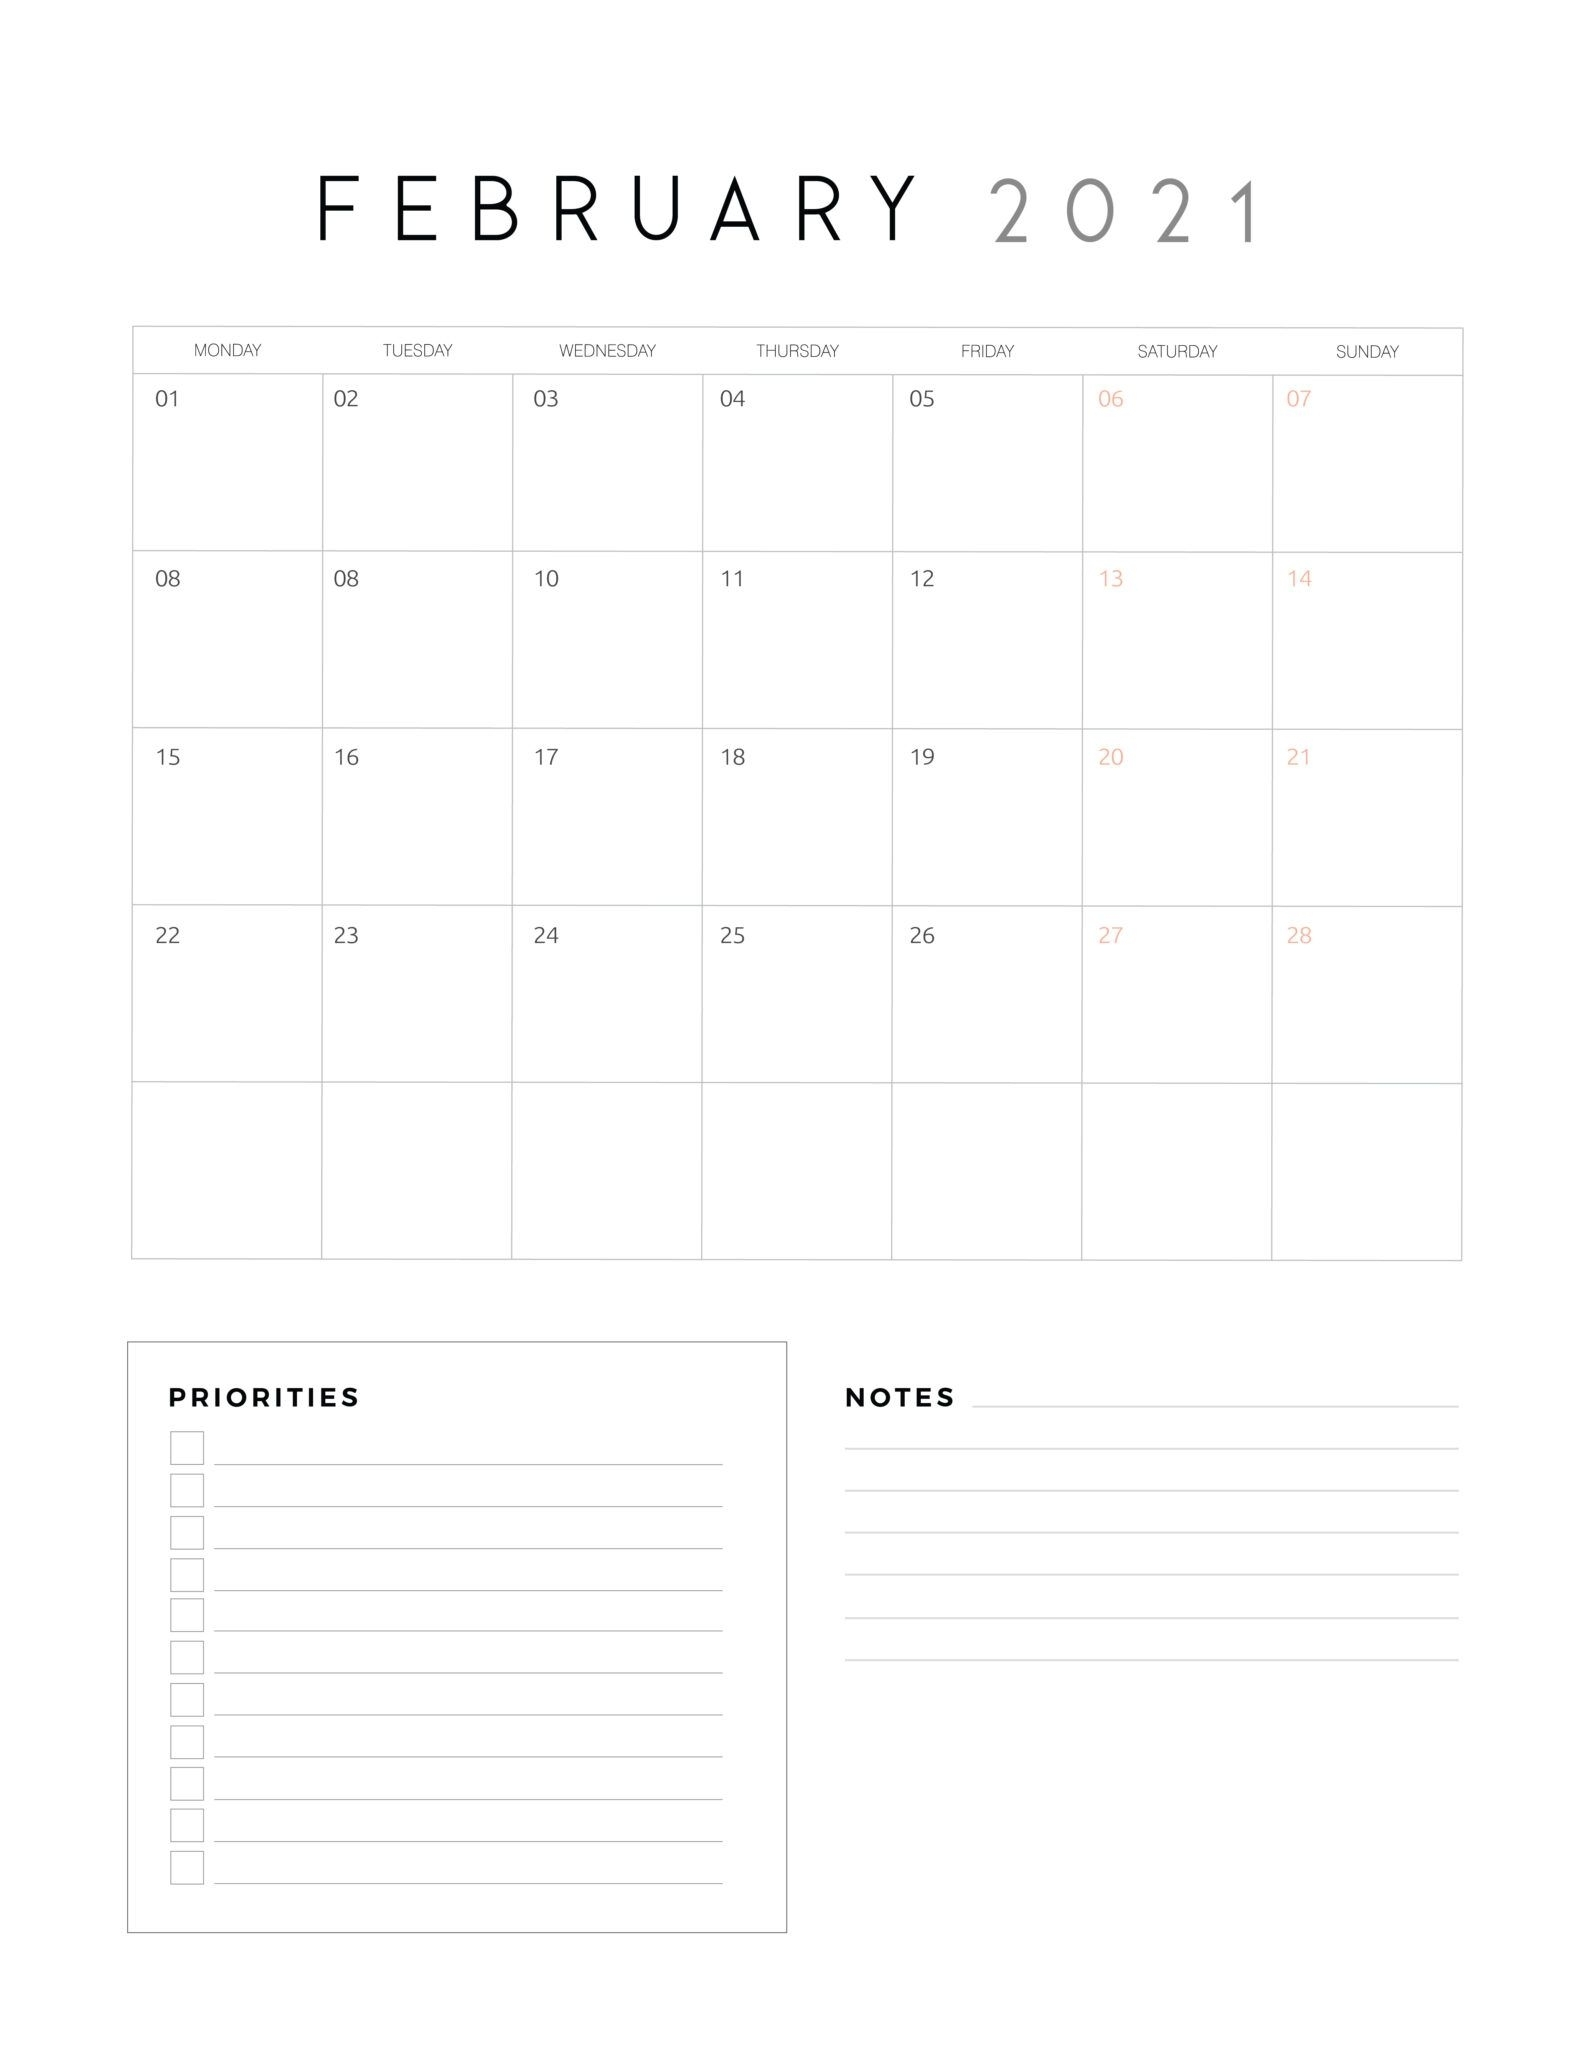 2021 Calendar With Priorities And Notes - World Of